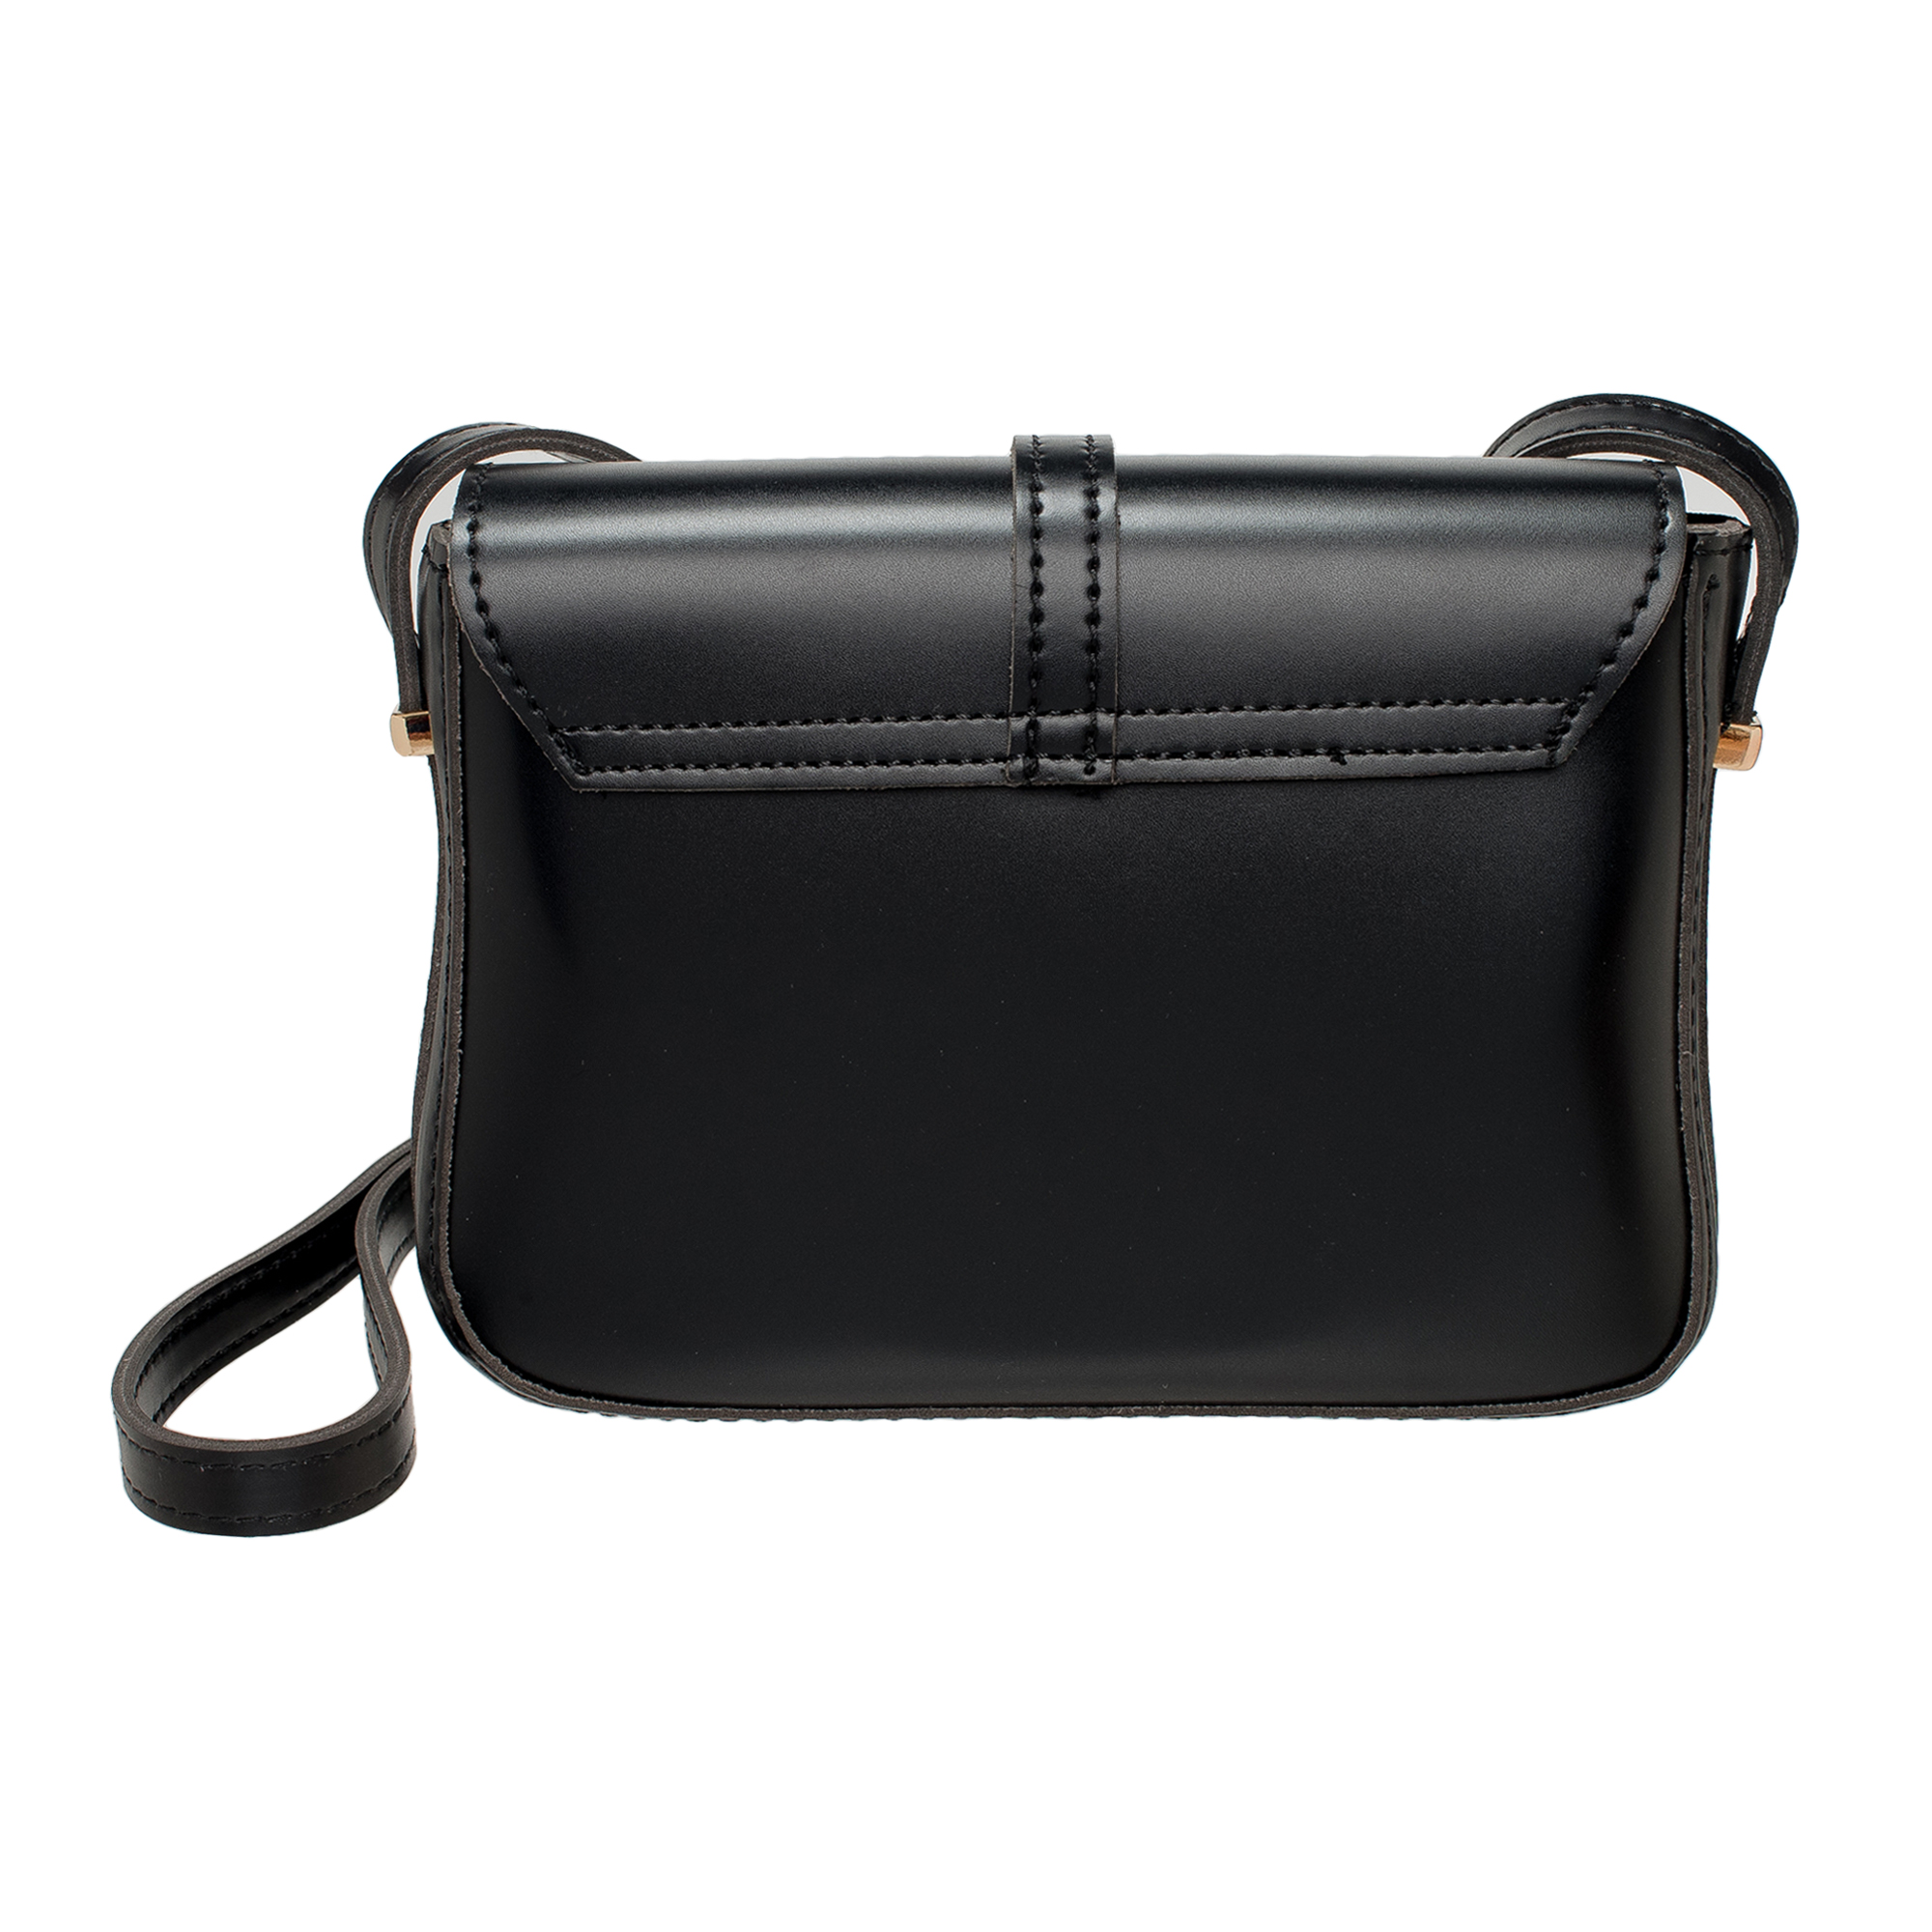 Tracey Star Latest Premium Sling Bag